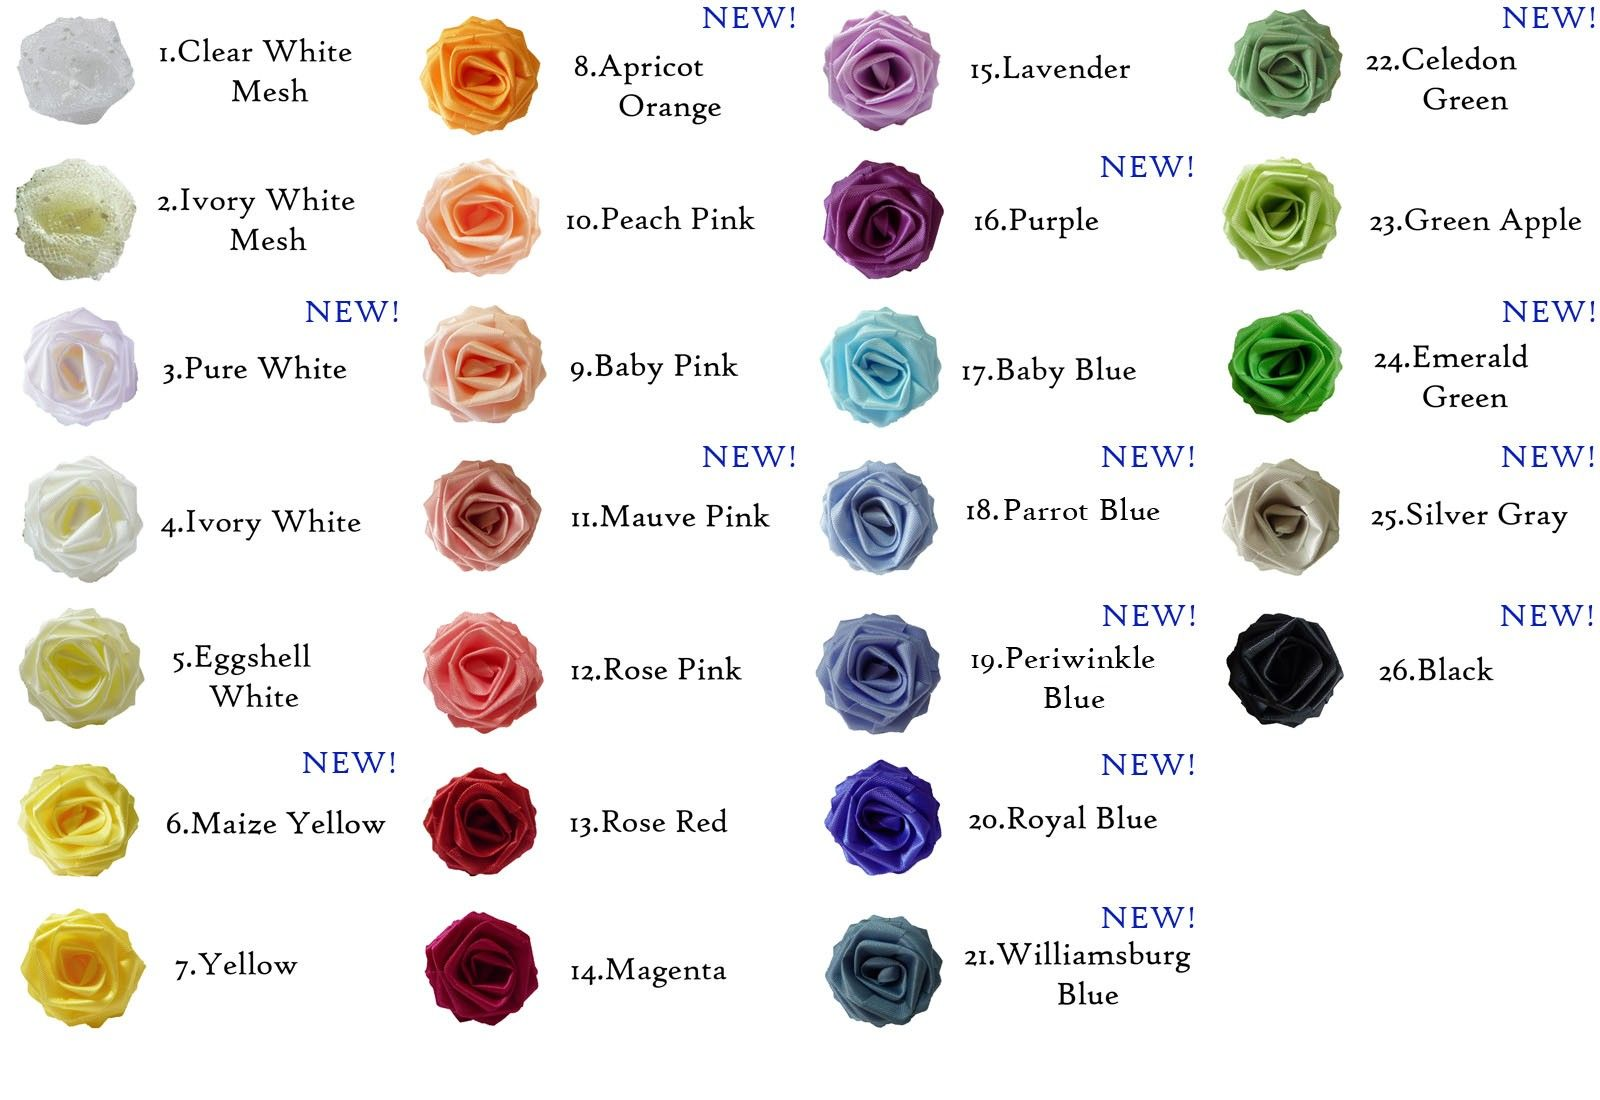 Color November Birthstone 22